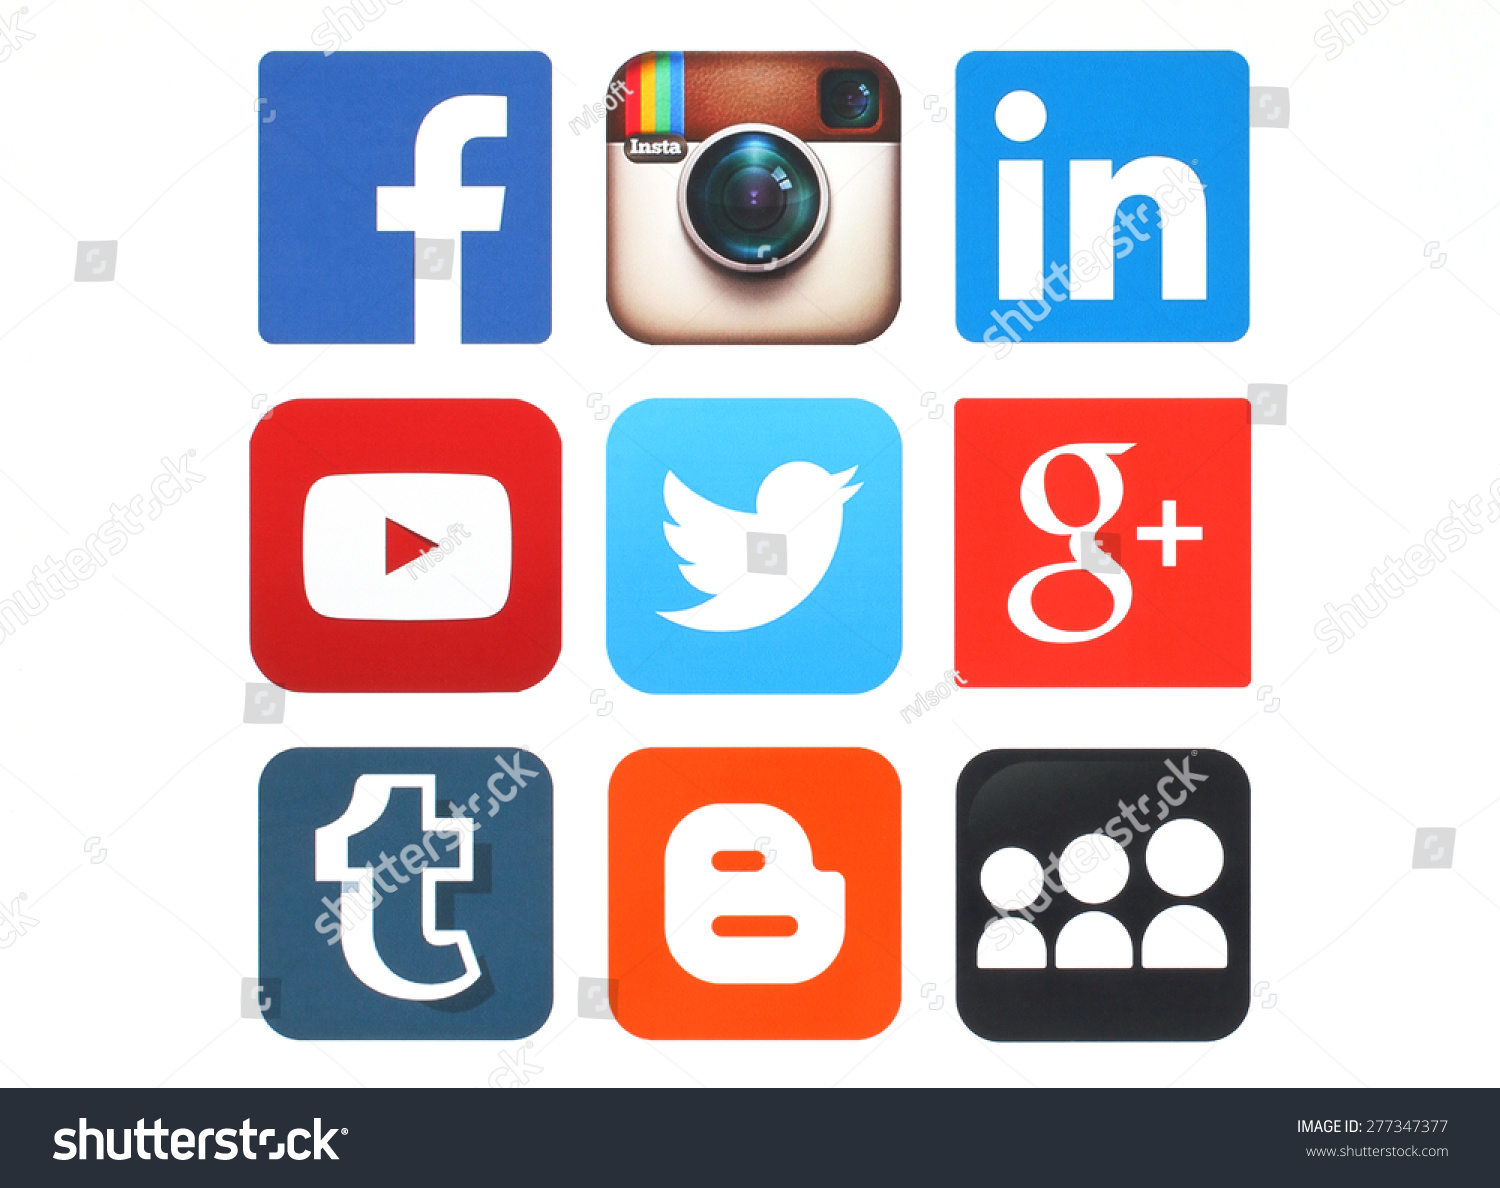 Stock images royalty free images vectors shutterstock stock photo kiev ukraine may collection of popular social media logos printed on paper facebook 277347377g biocorpaavc Image collections